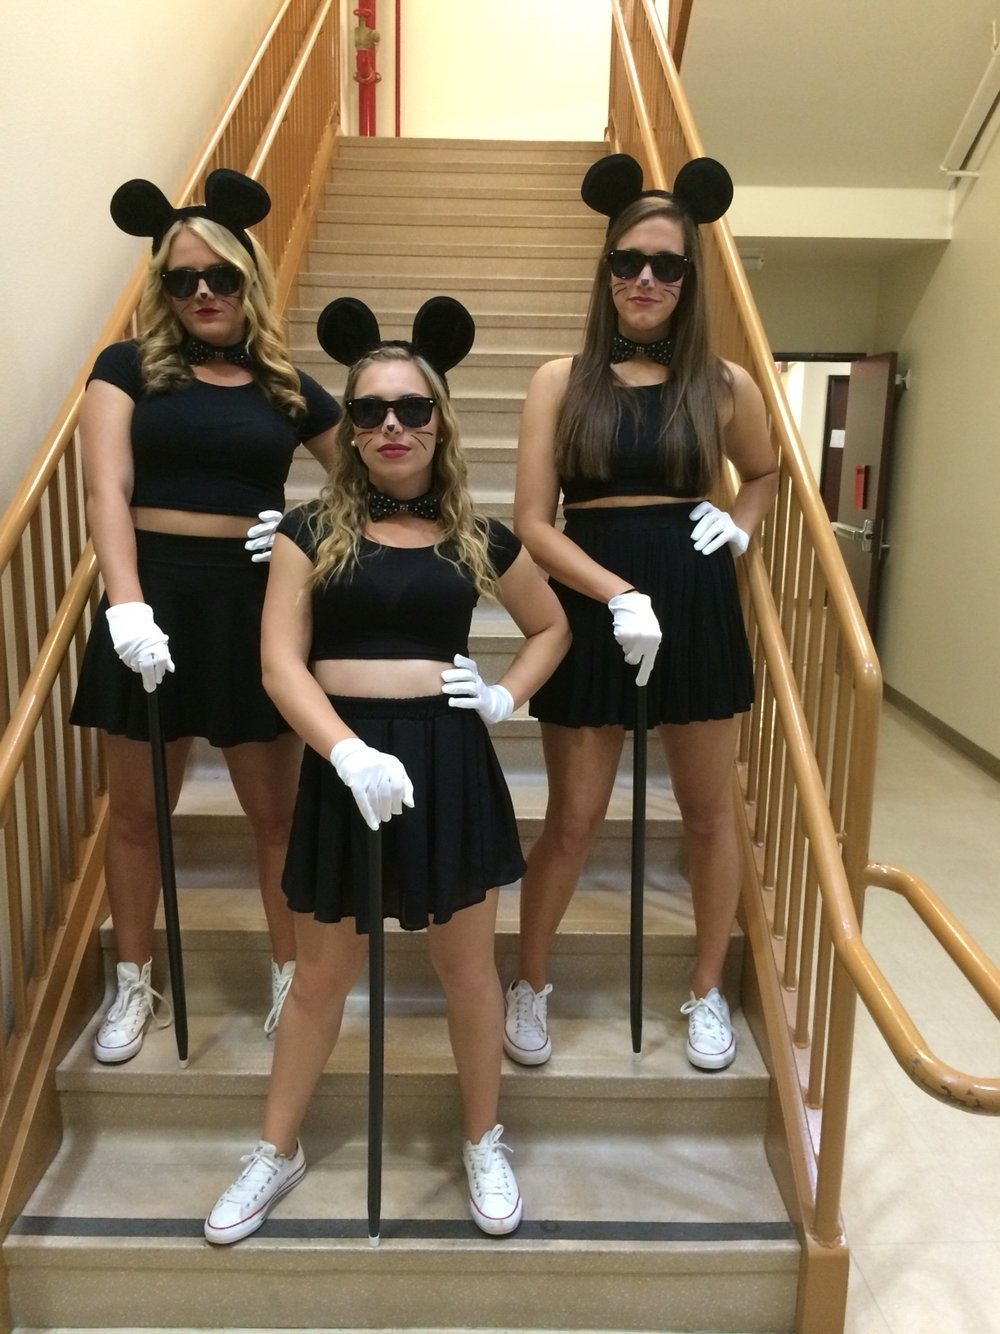 10 Attractive Halloween Ideas For 3 People think i might do this with my friends for halloween also is a great 3 2021